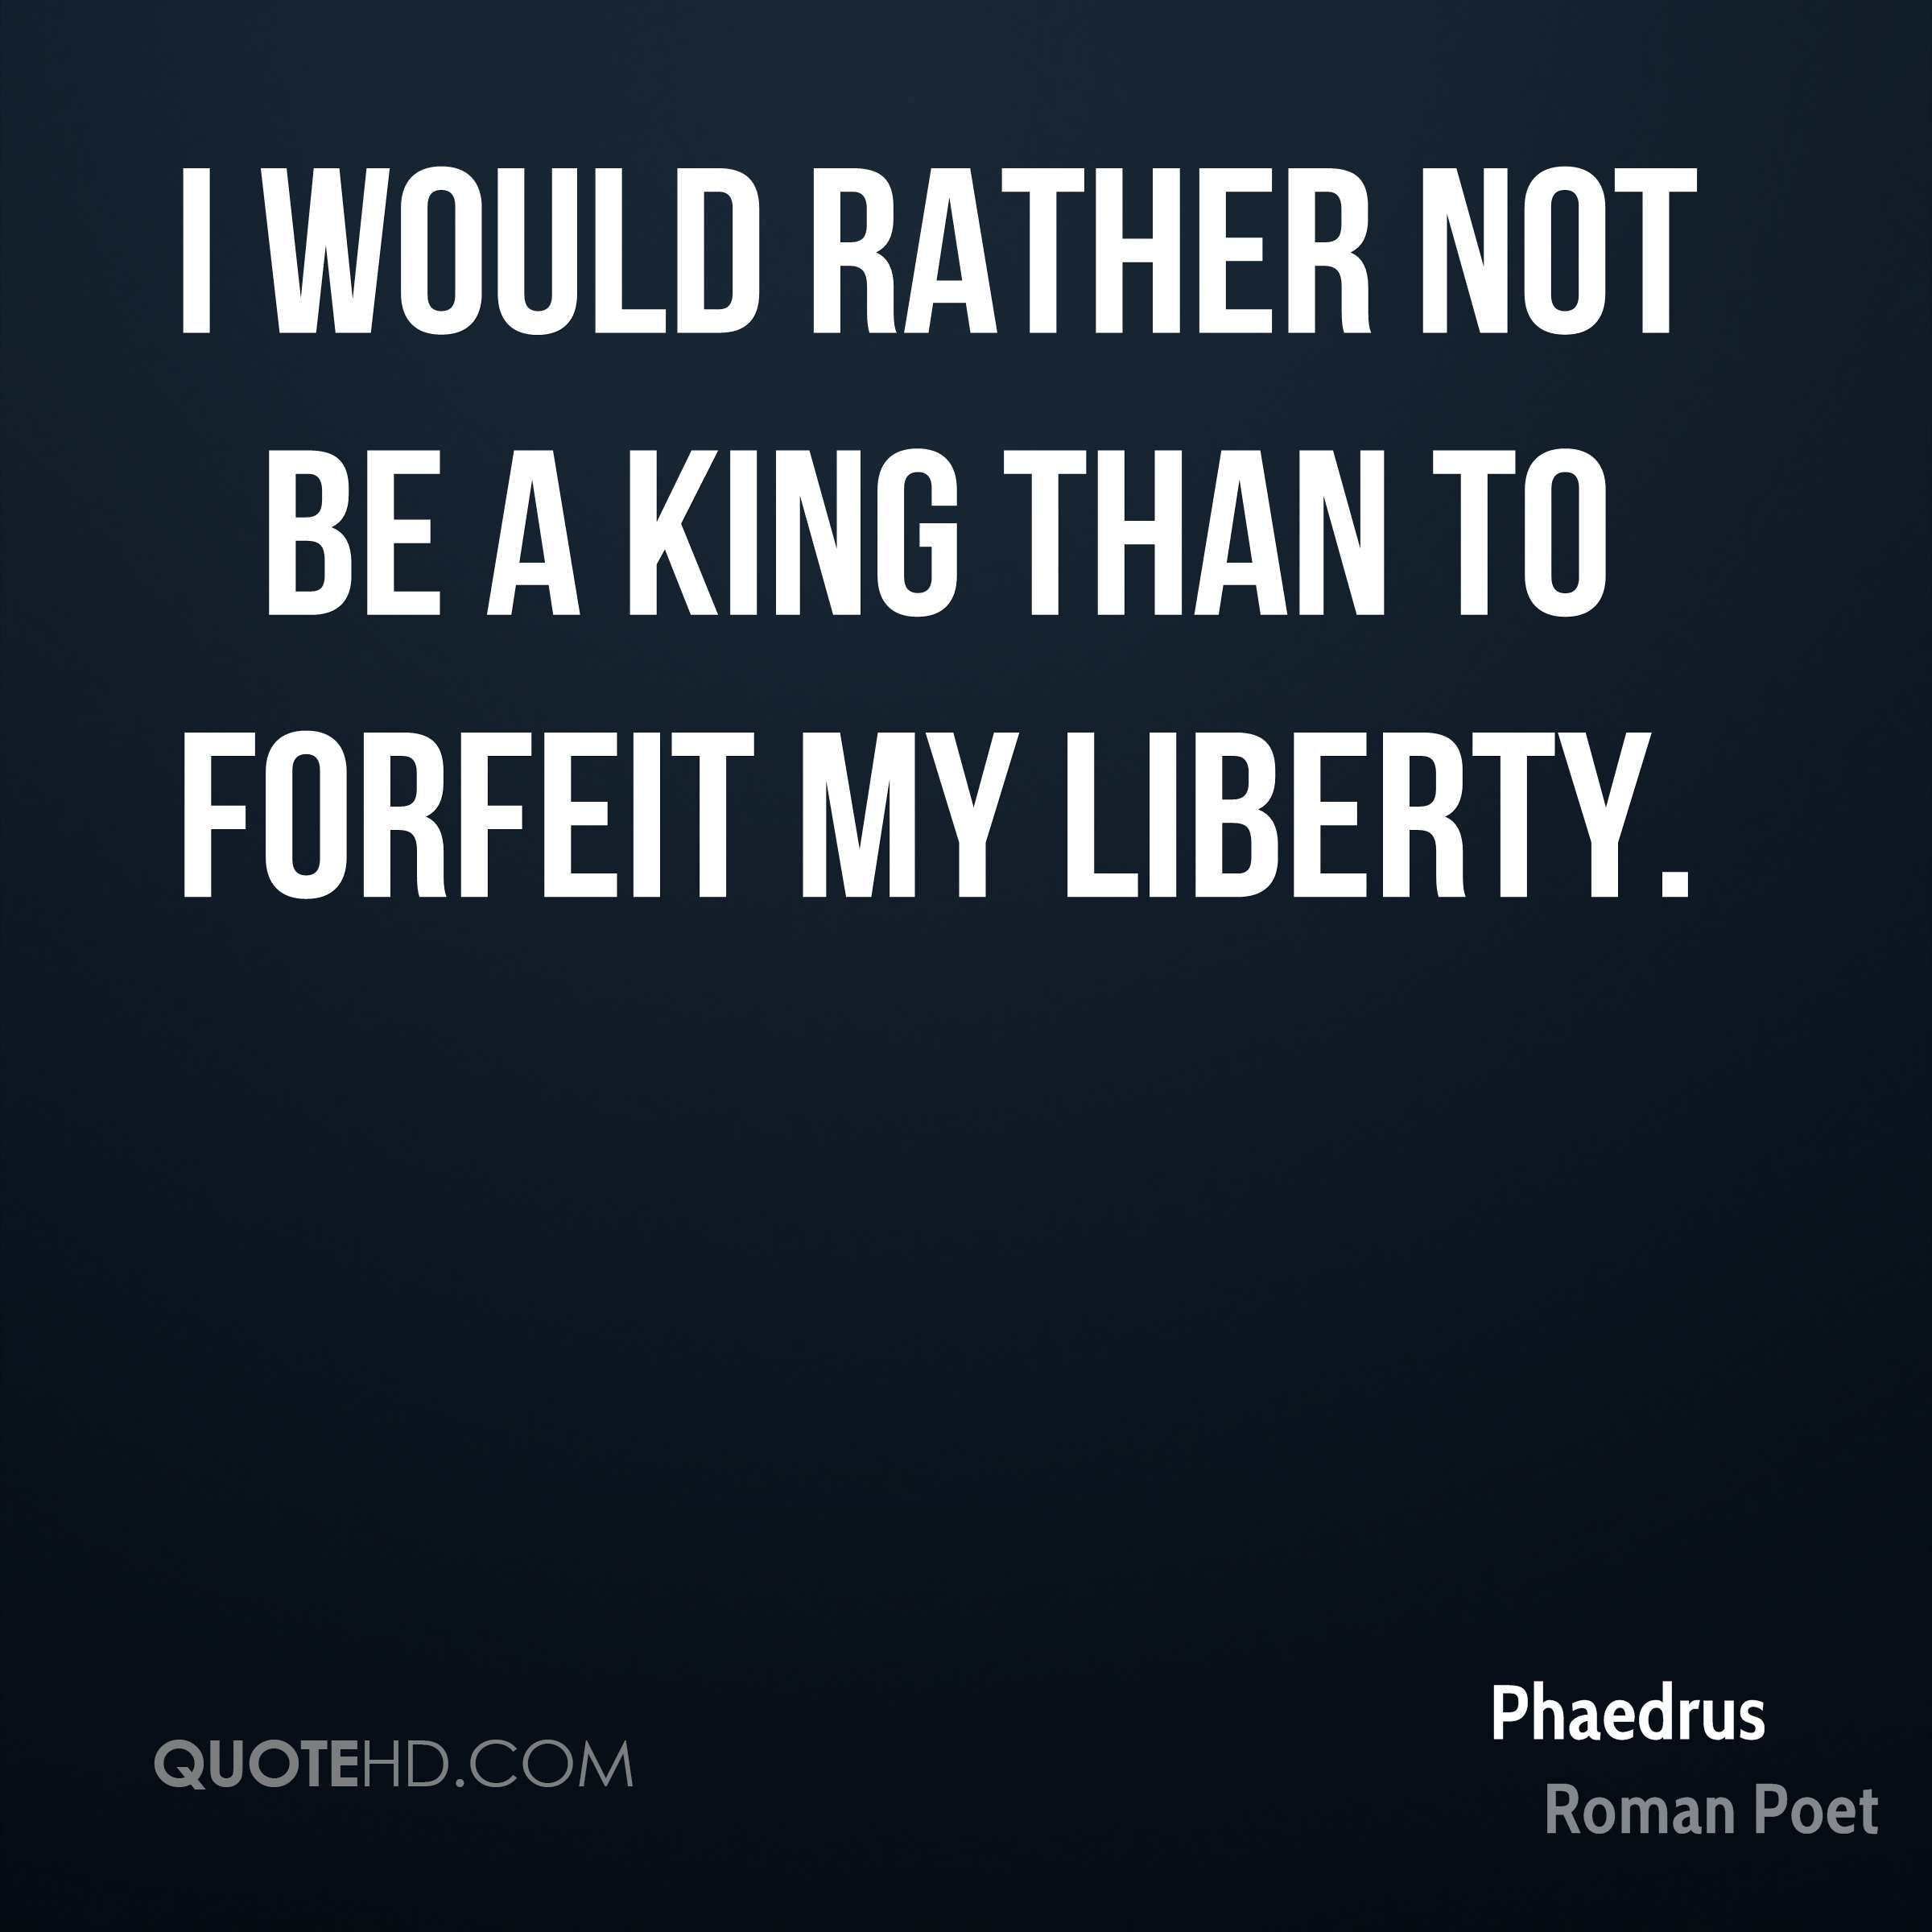 I would rather not be a king than to forfeit my liberty.